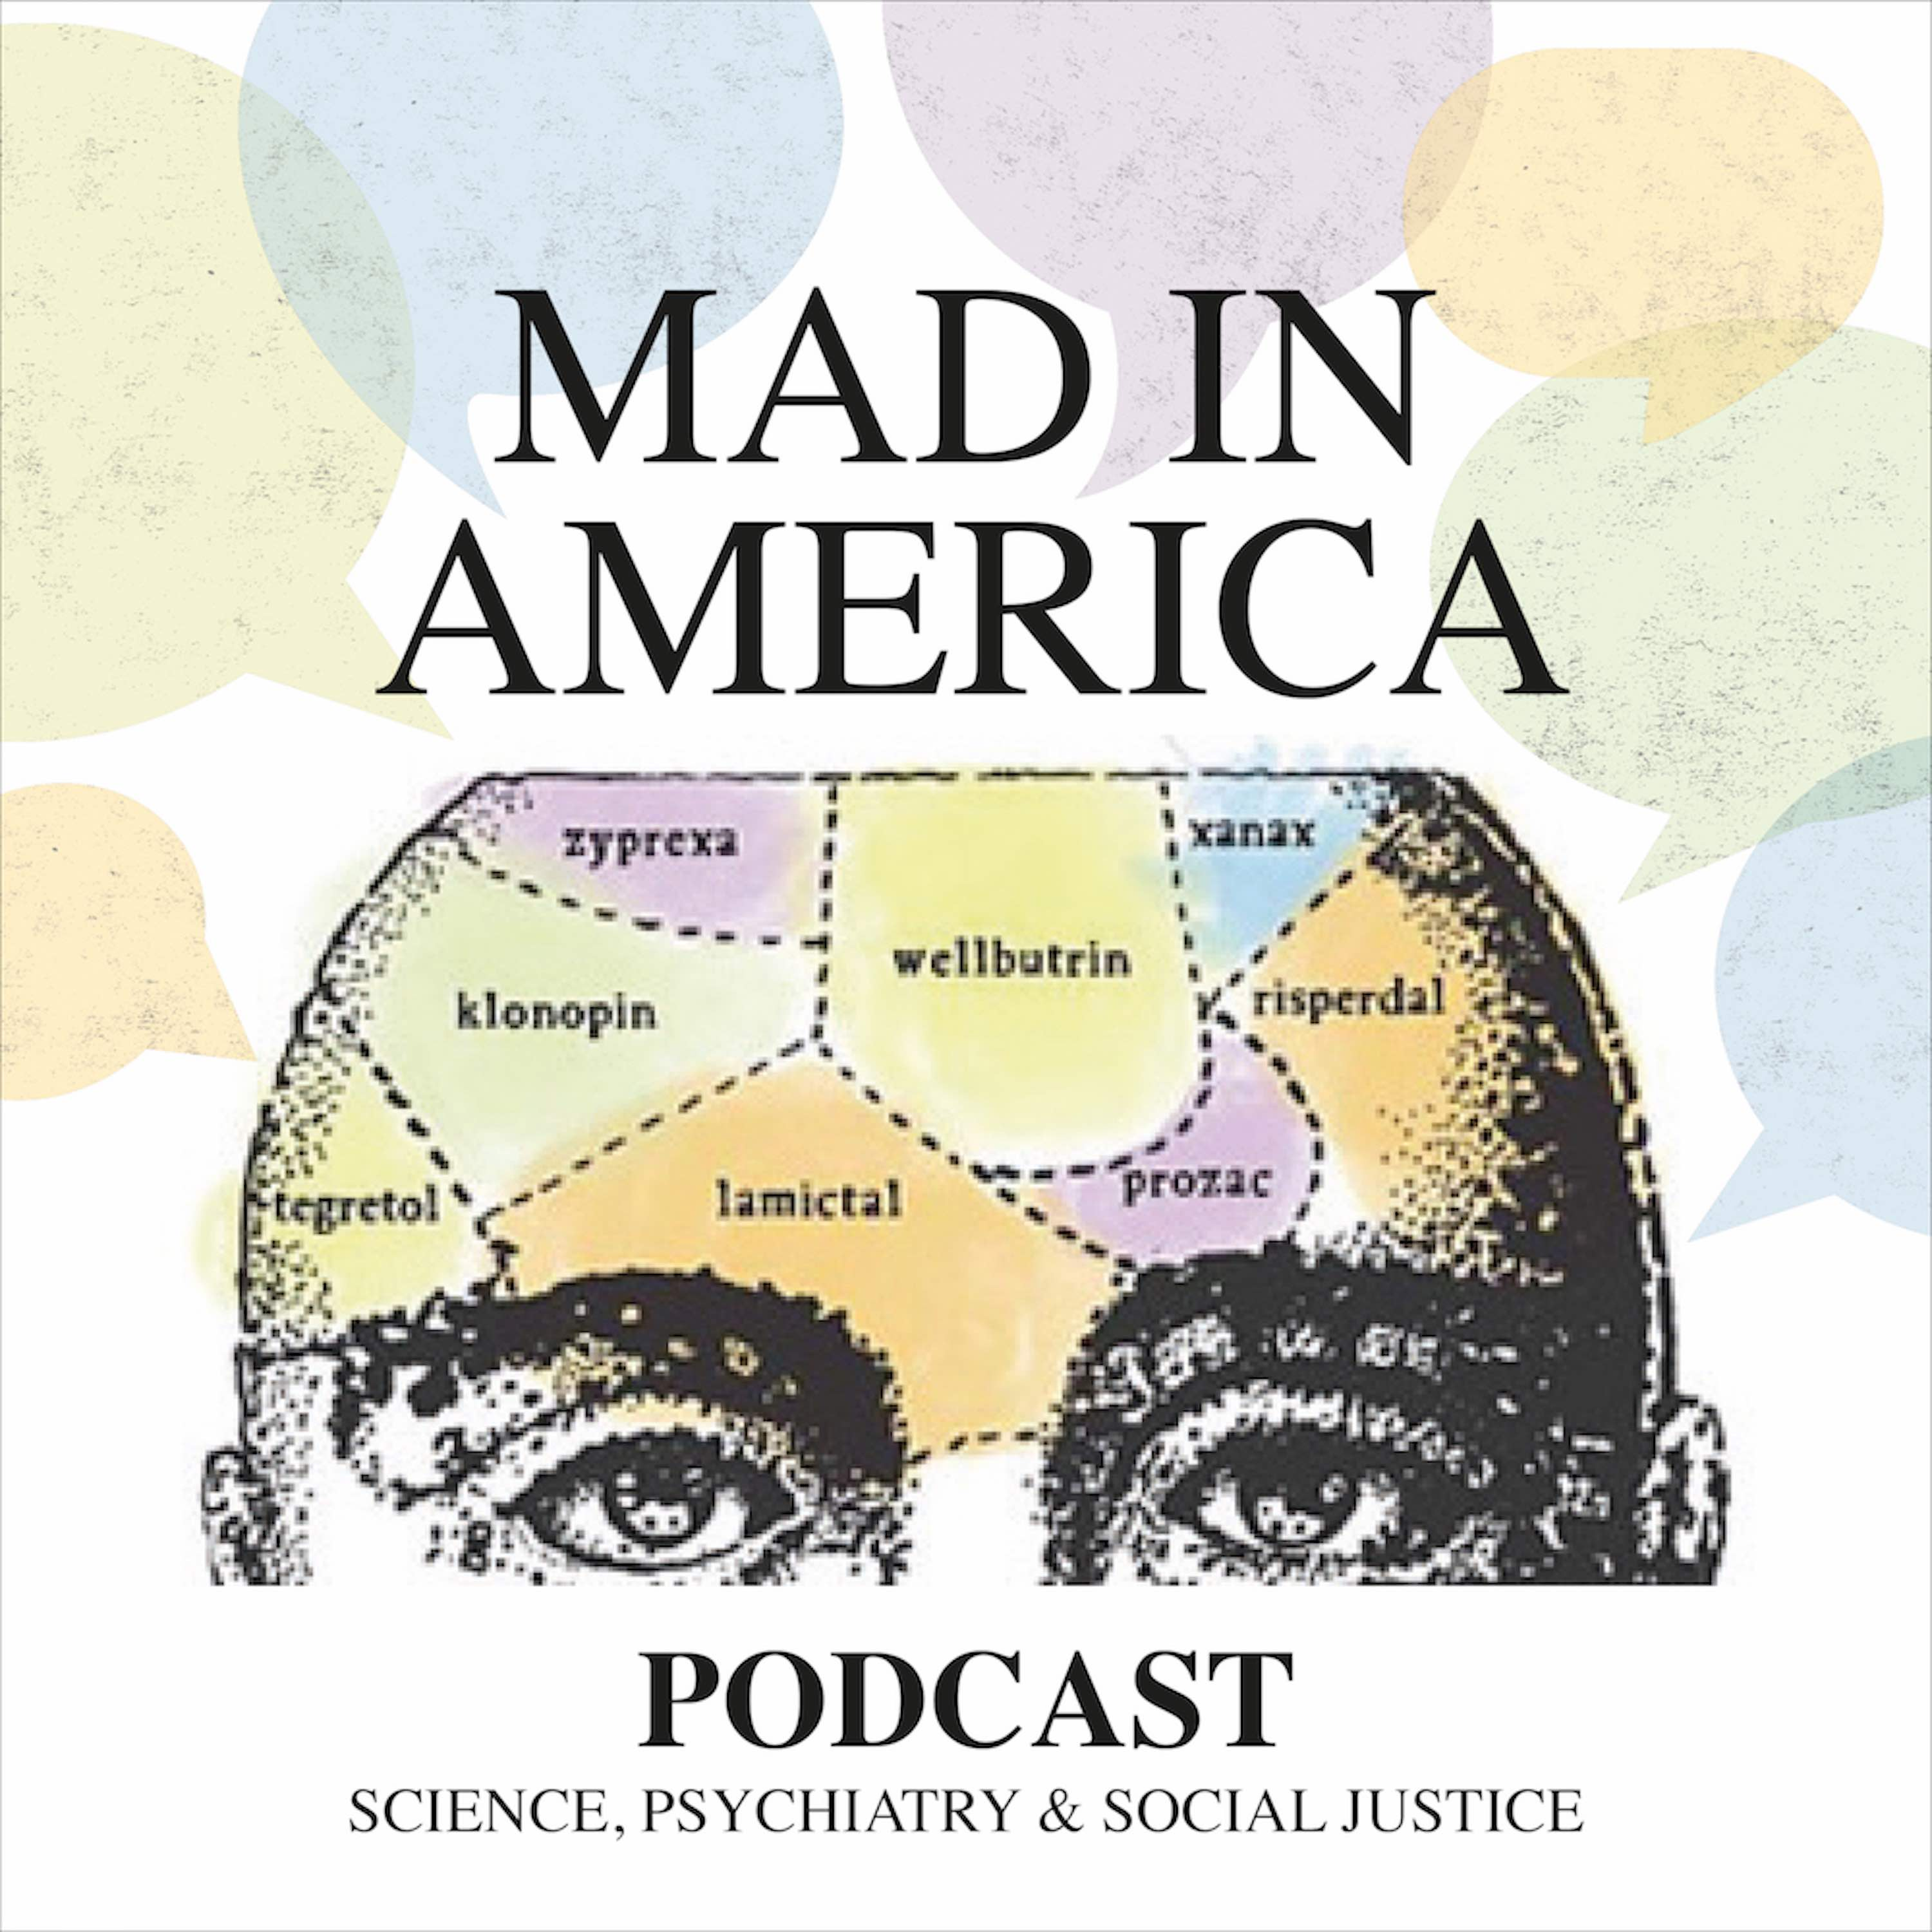 Mad in America: Rethinking Mental Health - Jhilmil Breckenridge and Bhargavi Davar - Global Mental Health - An Old System Wearing New Clothes